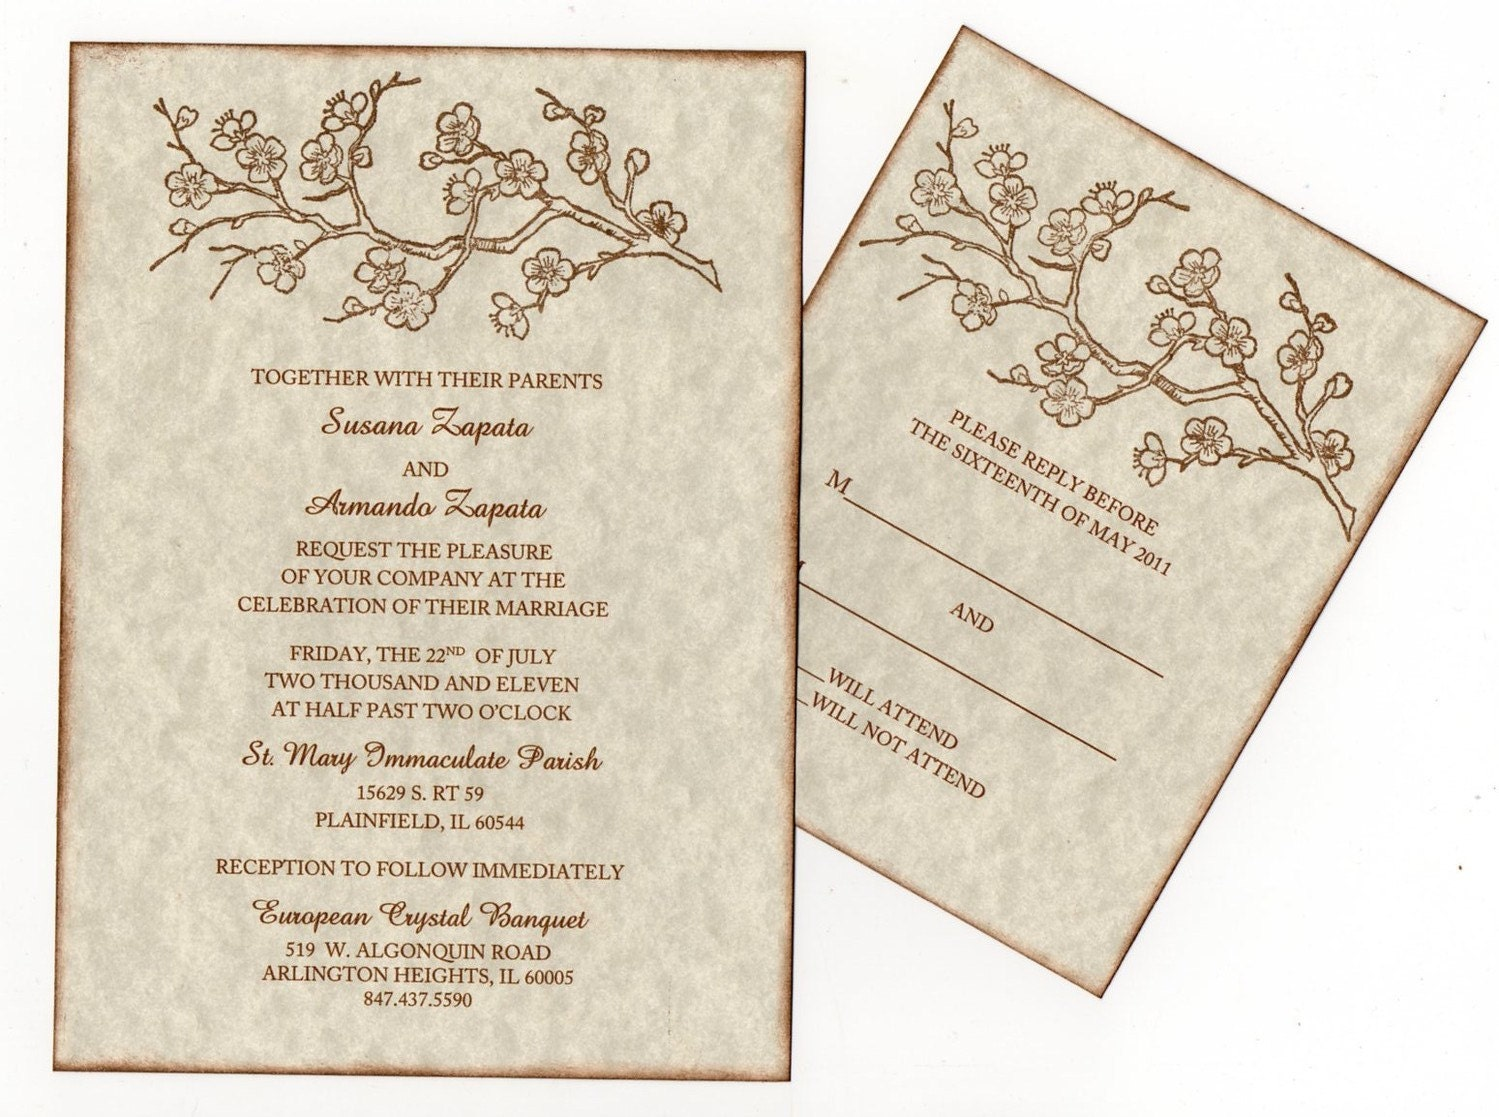 Indian wedding invitation card designs manish sharma indian wedding invitation card designs stopboris Gallery